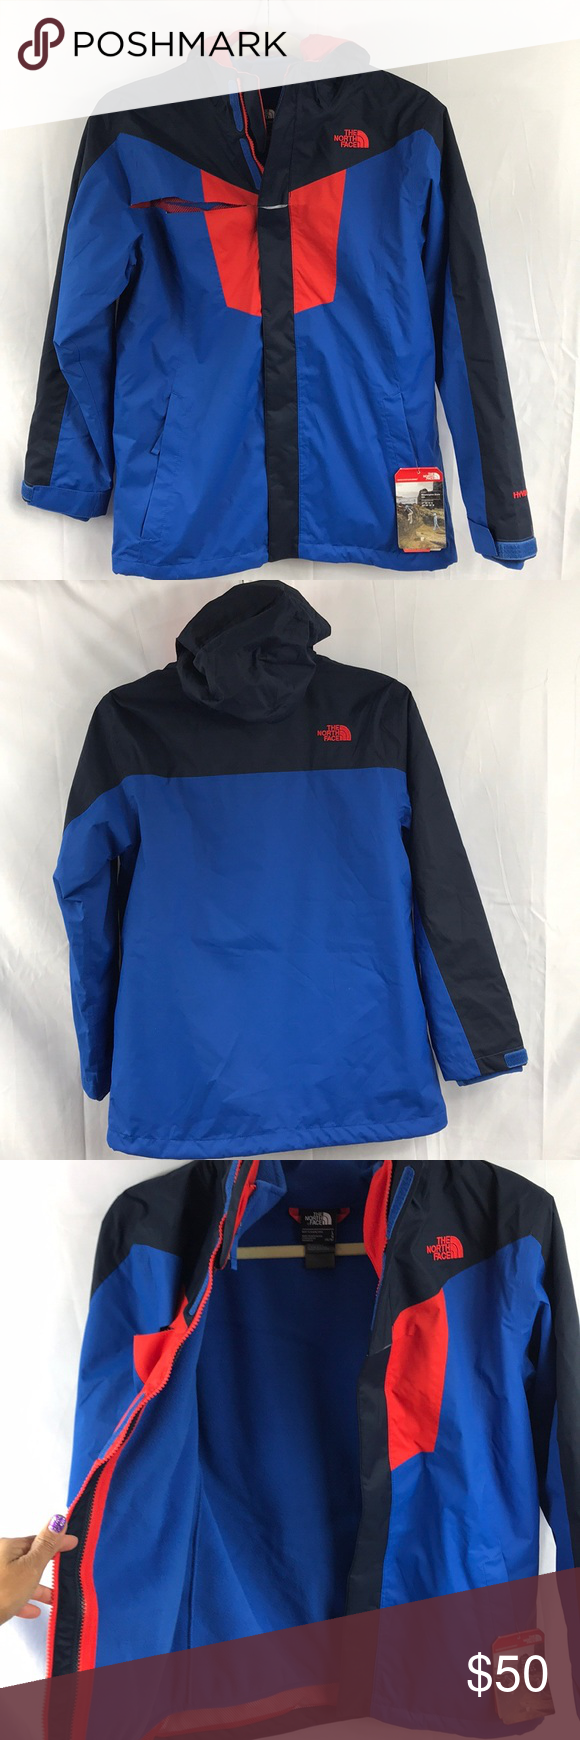 cf0b5d394 The North Face Youth Boys Vortex Triclimate Jacket NEW W/ DEFECT ...